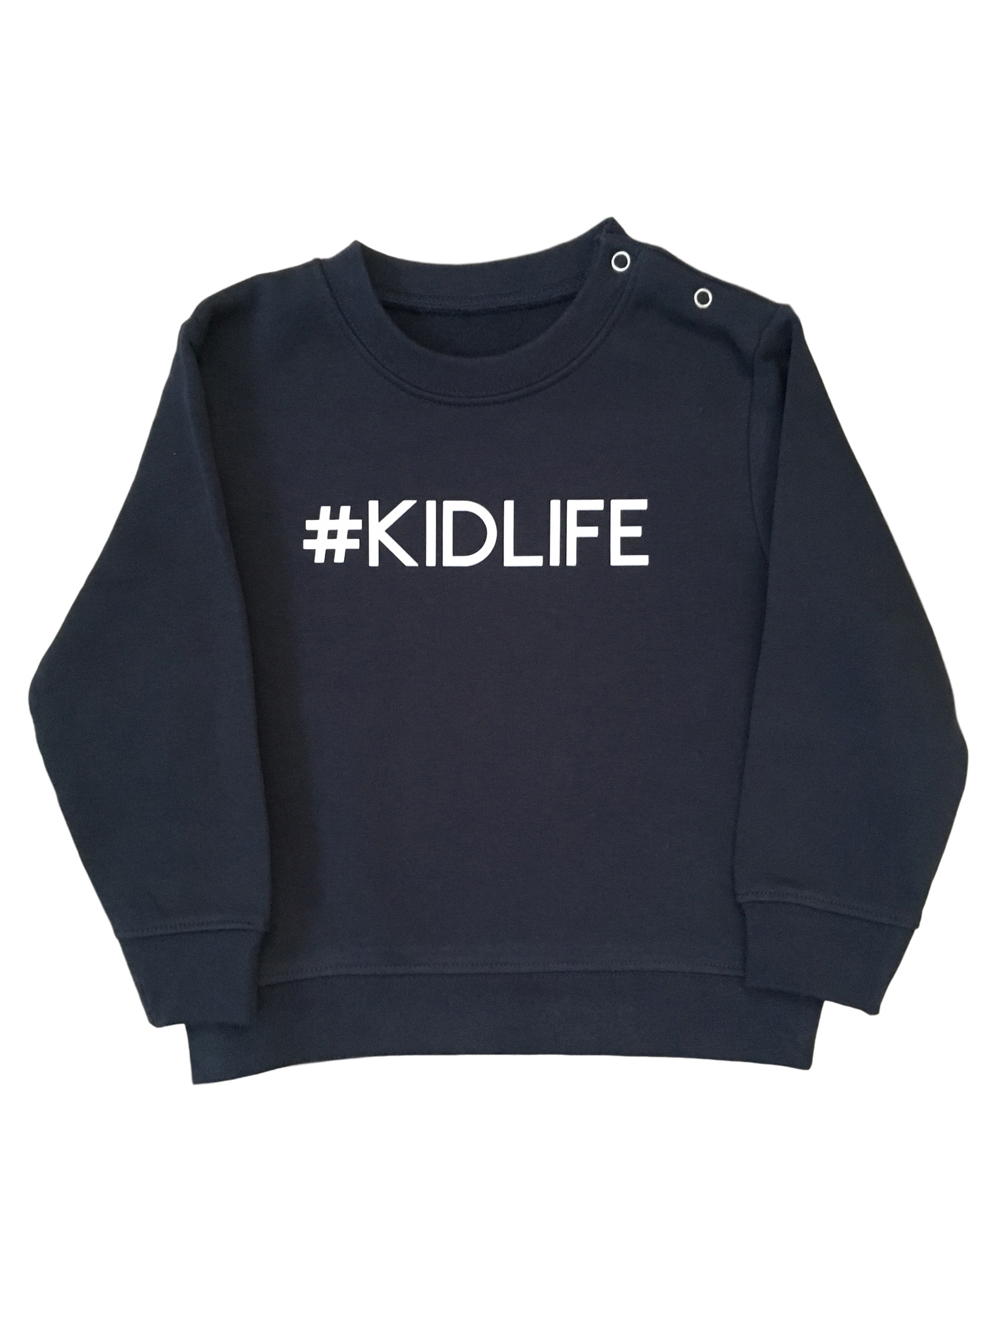 Childrens – Kidlife Sweatshirt 2-3 Years